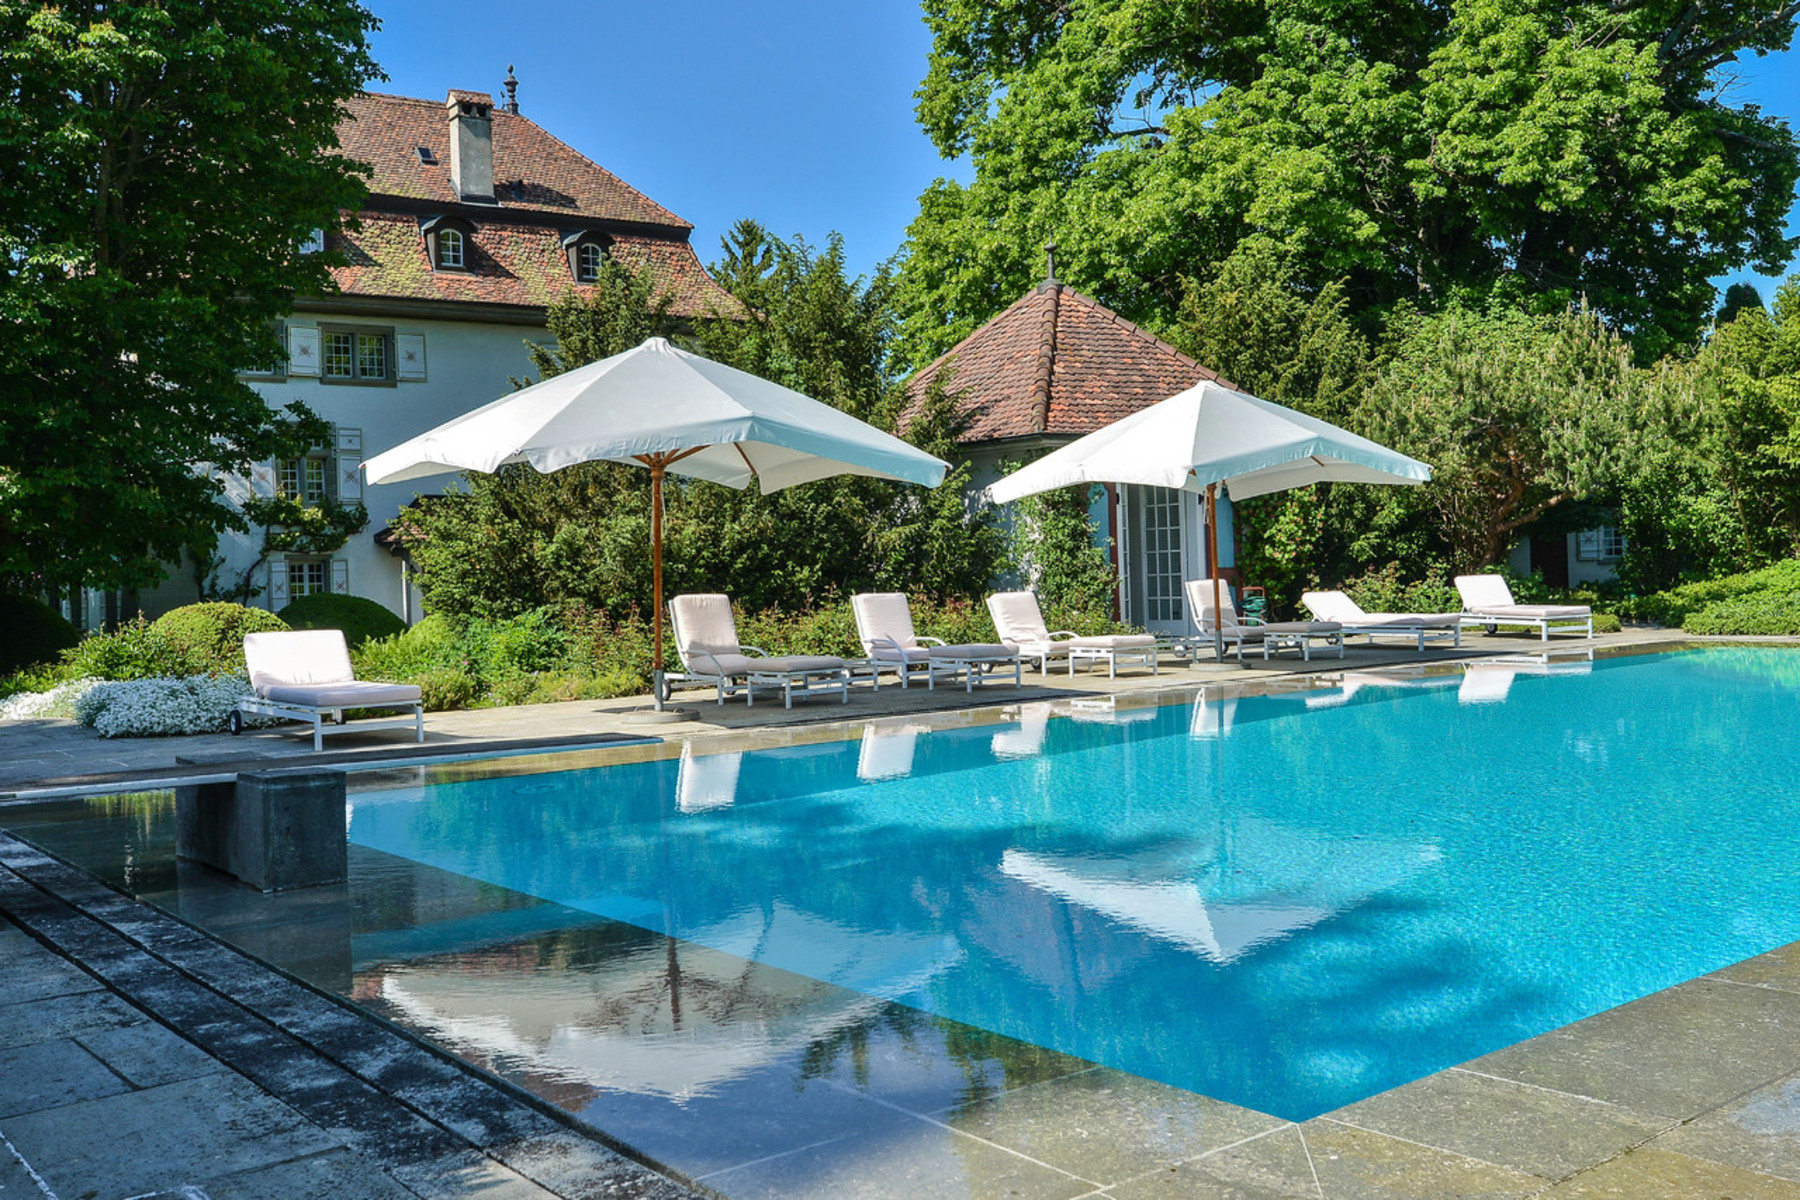 Single Family Home for Sale at Superb 16th-century mansion Idyllic setting Ependes Ependes, Fribourg, 1731 Switzerland